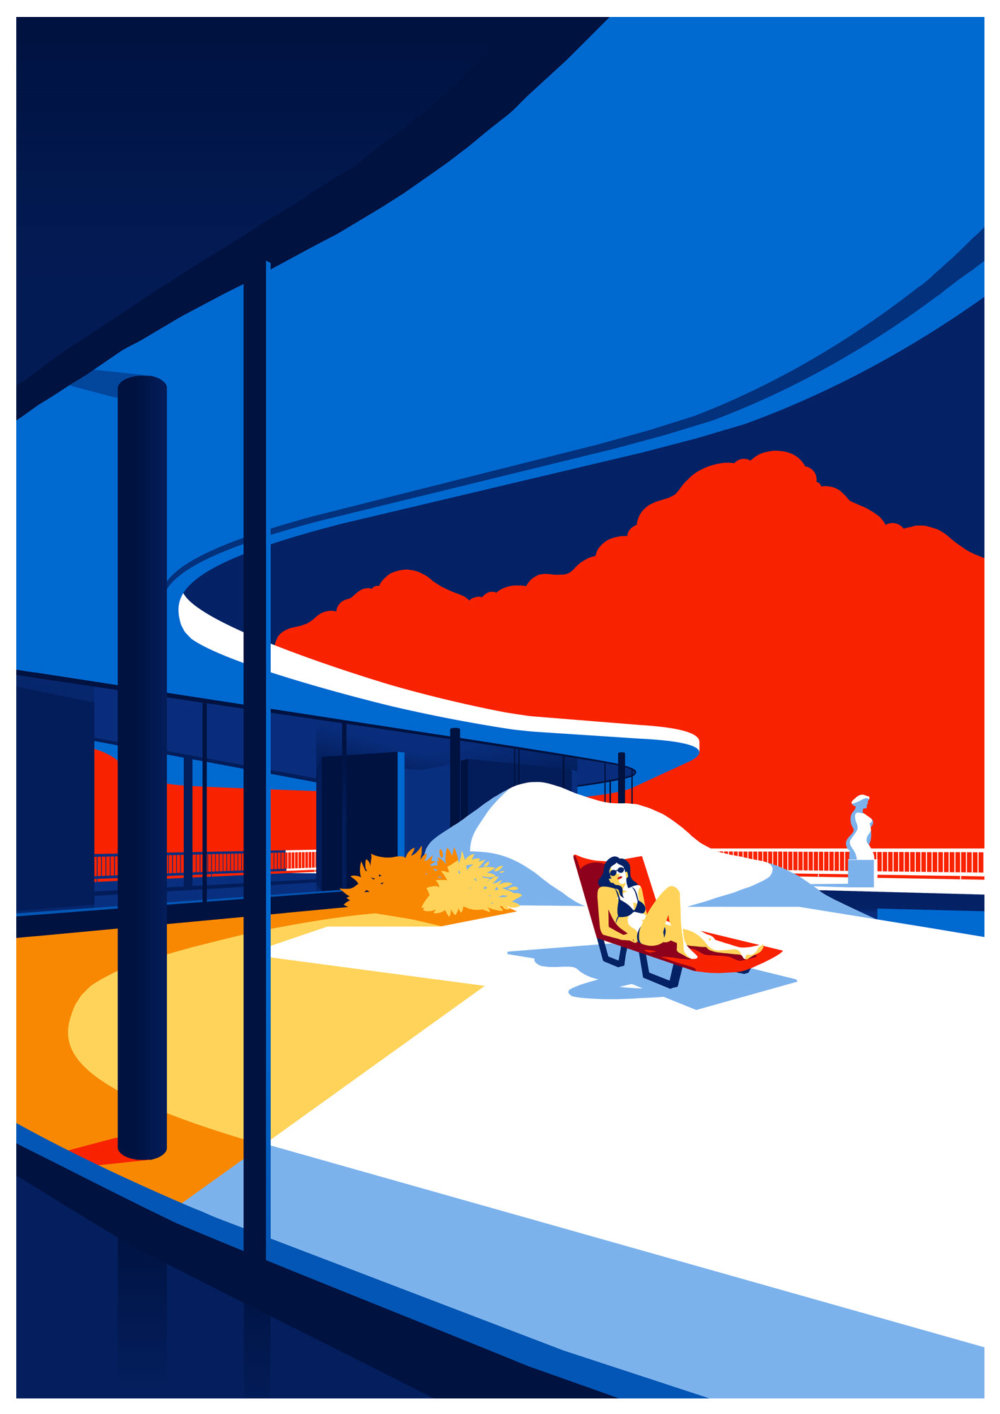 Utopia Architectural Illustration Series Featuring Oscar Niemeyers Design Lines By Levente Szabo 5